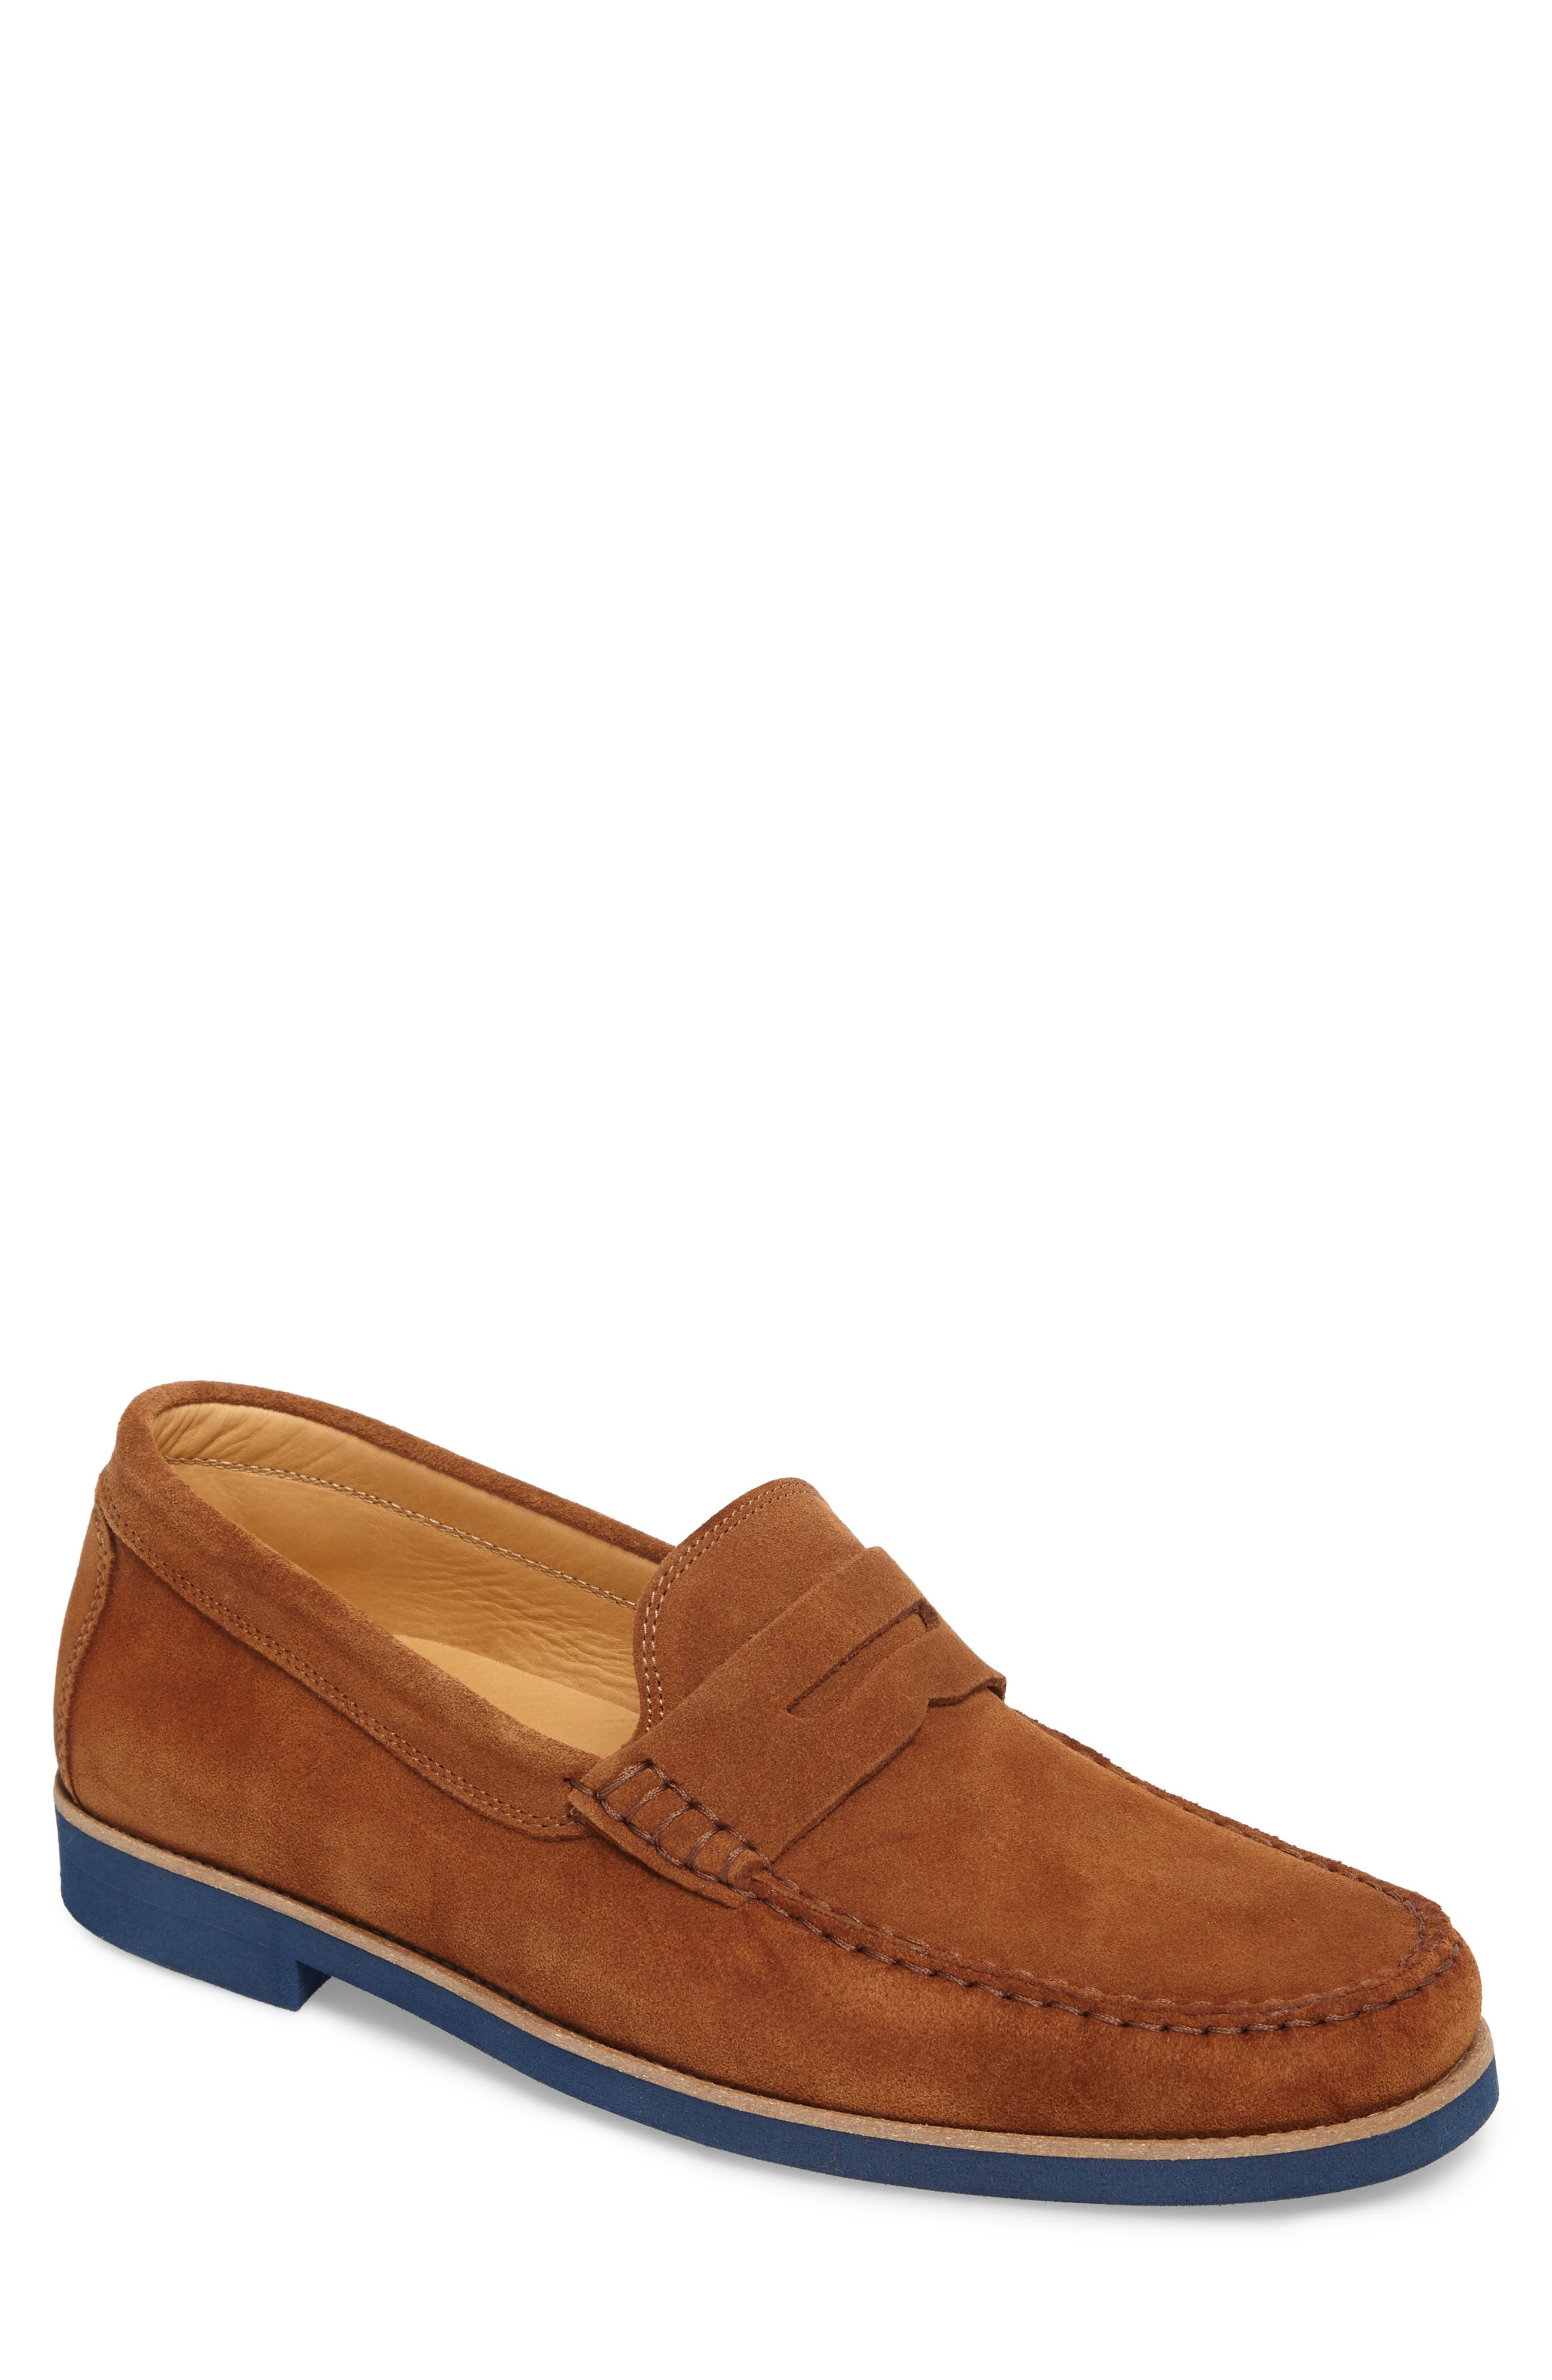 Kennedy Penny Loafer,                         Main,                         color, Medium Brown Suede